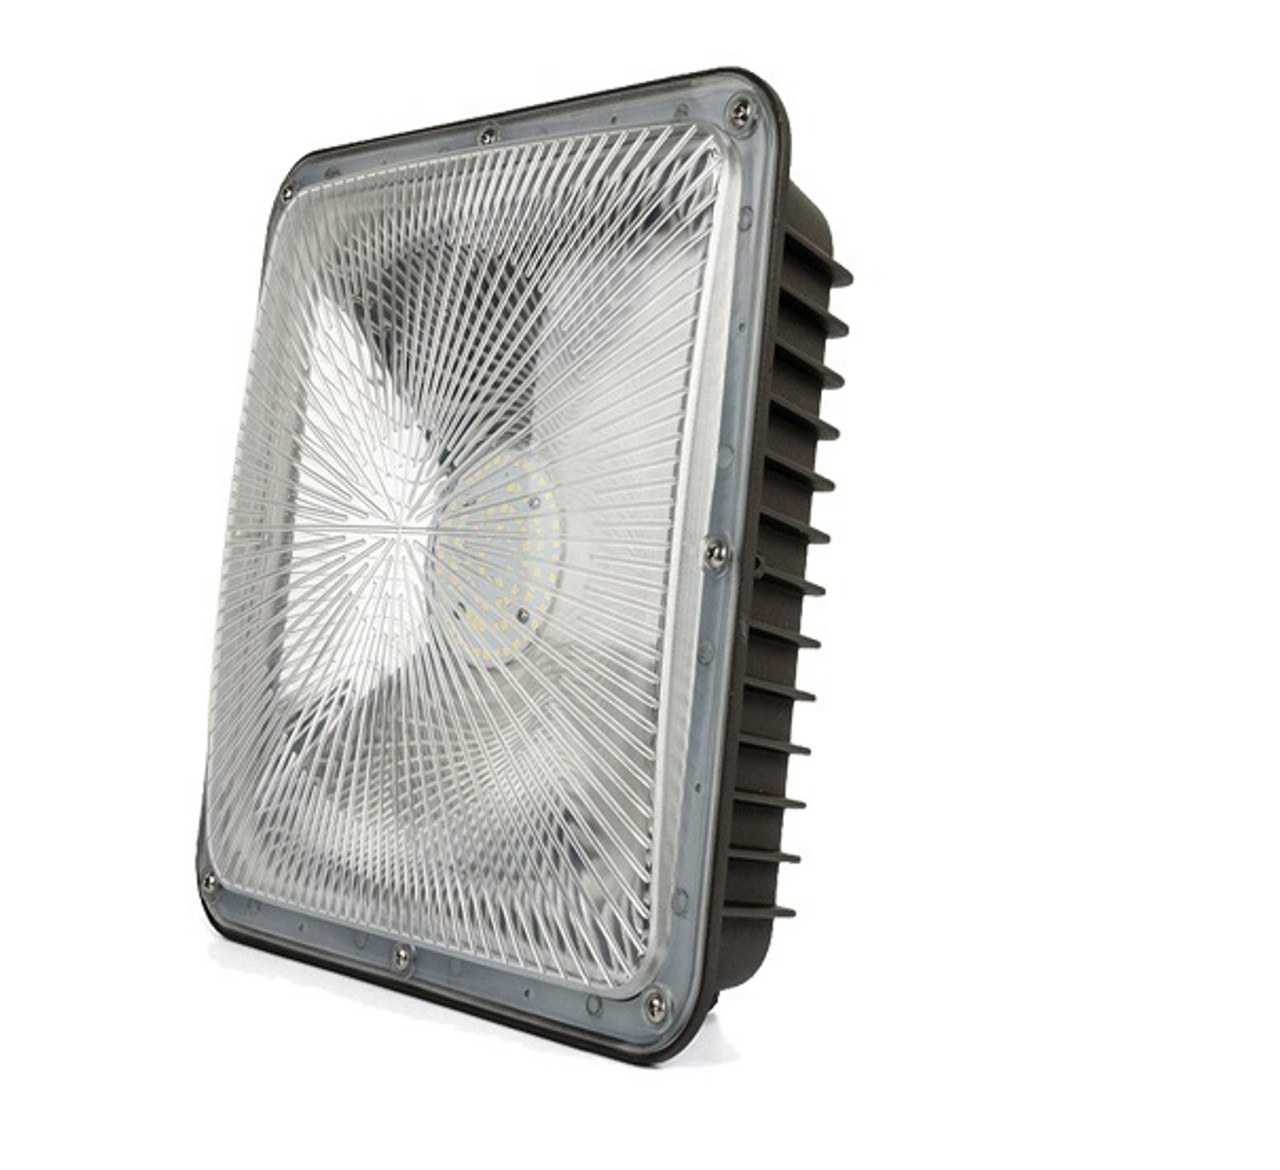 Slim Line Canopy LED Light 70 Watt, 9100 lumen , 5000 Kelvin 100-277 volt UL DLC Listed